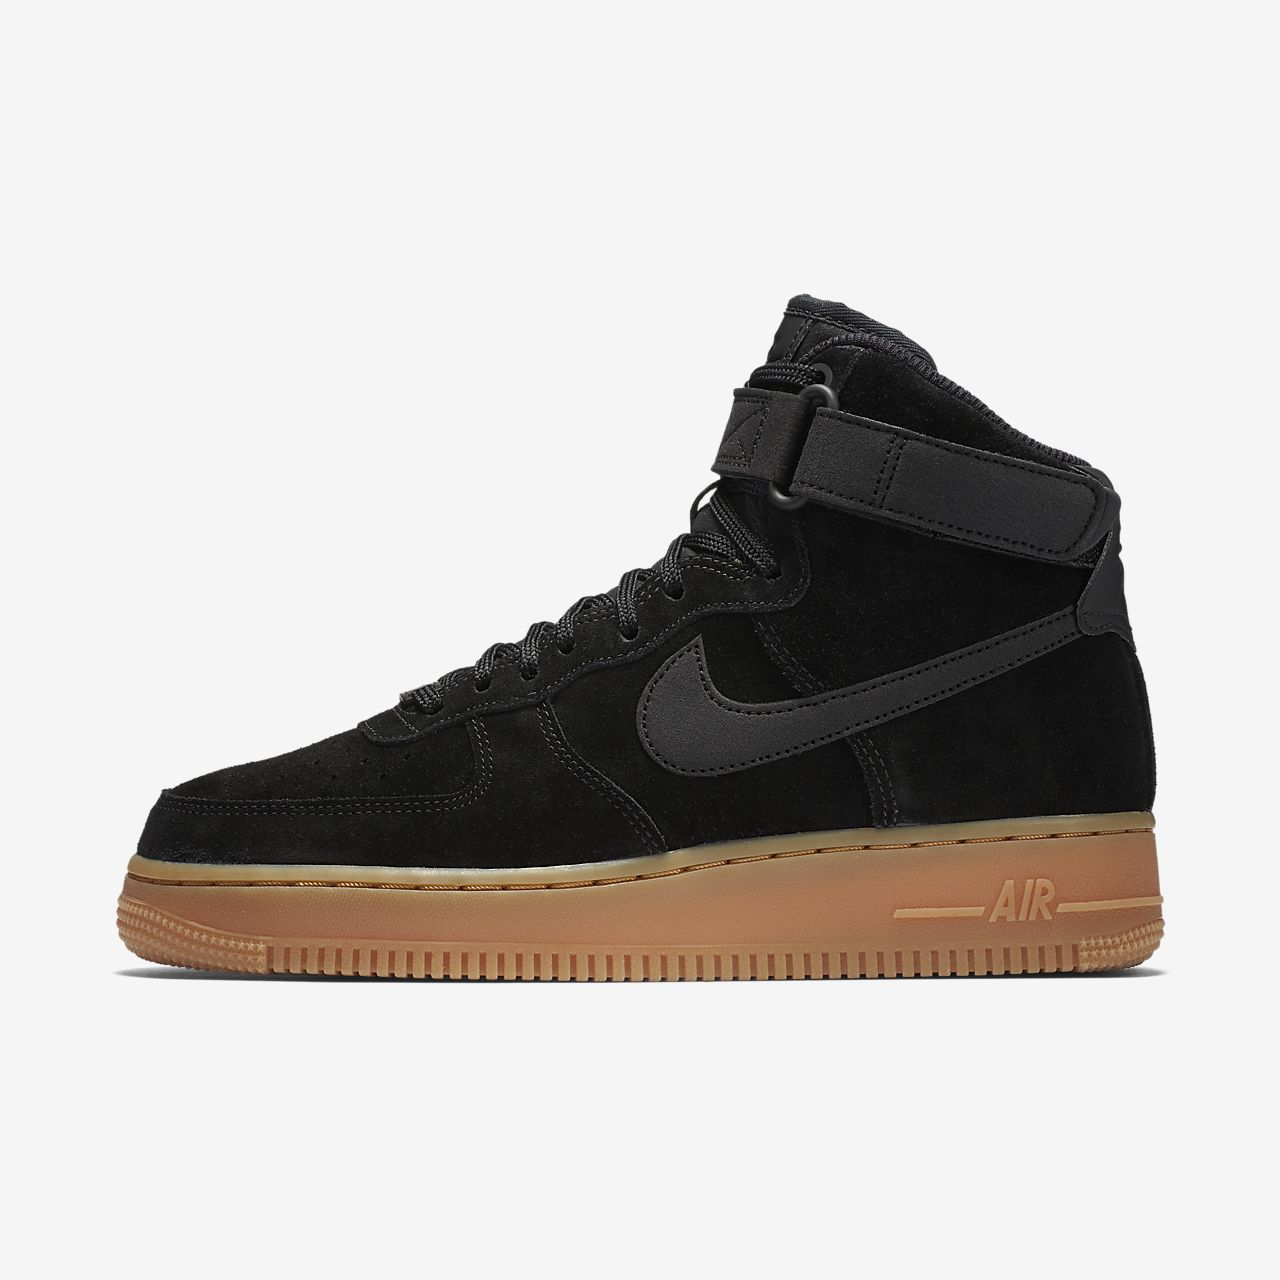 nike air force 1 medium brown gum nz